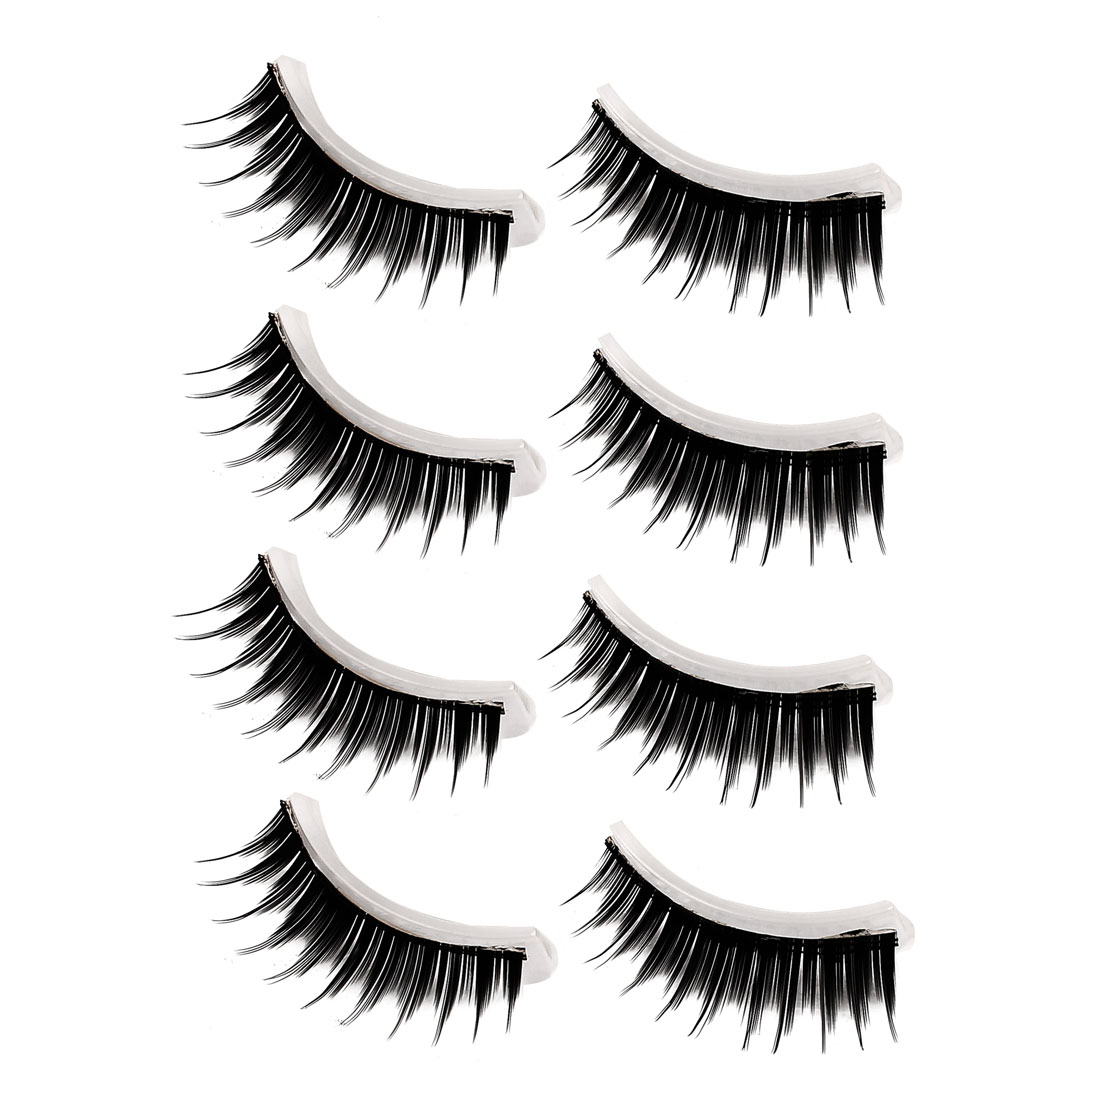 4 Pairs Black Adhesive False Eyelashes Fake Eye Lashes w Glue for Lady